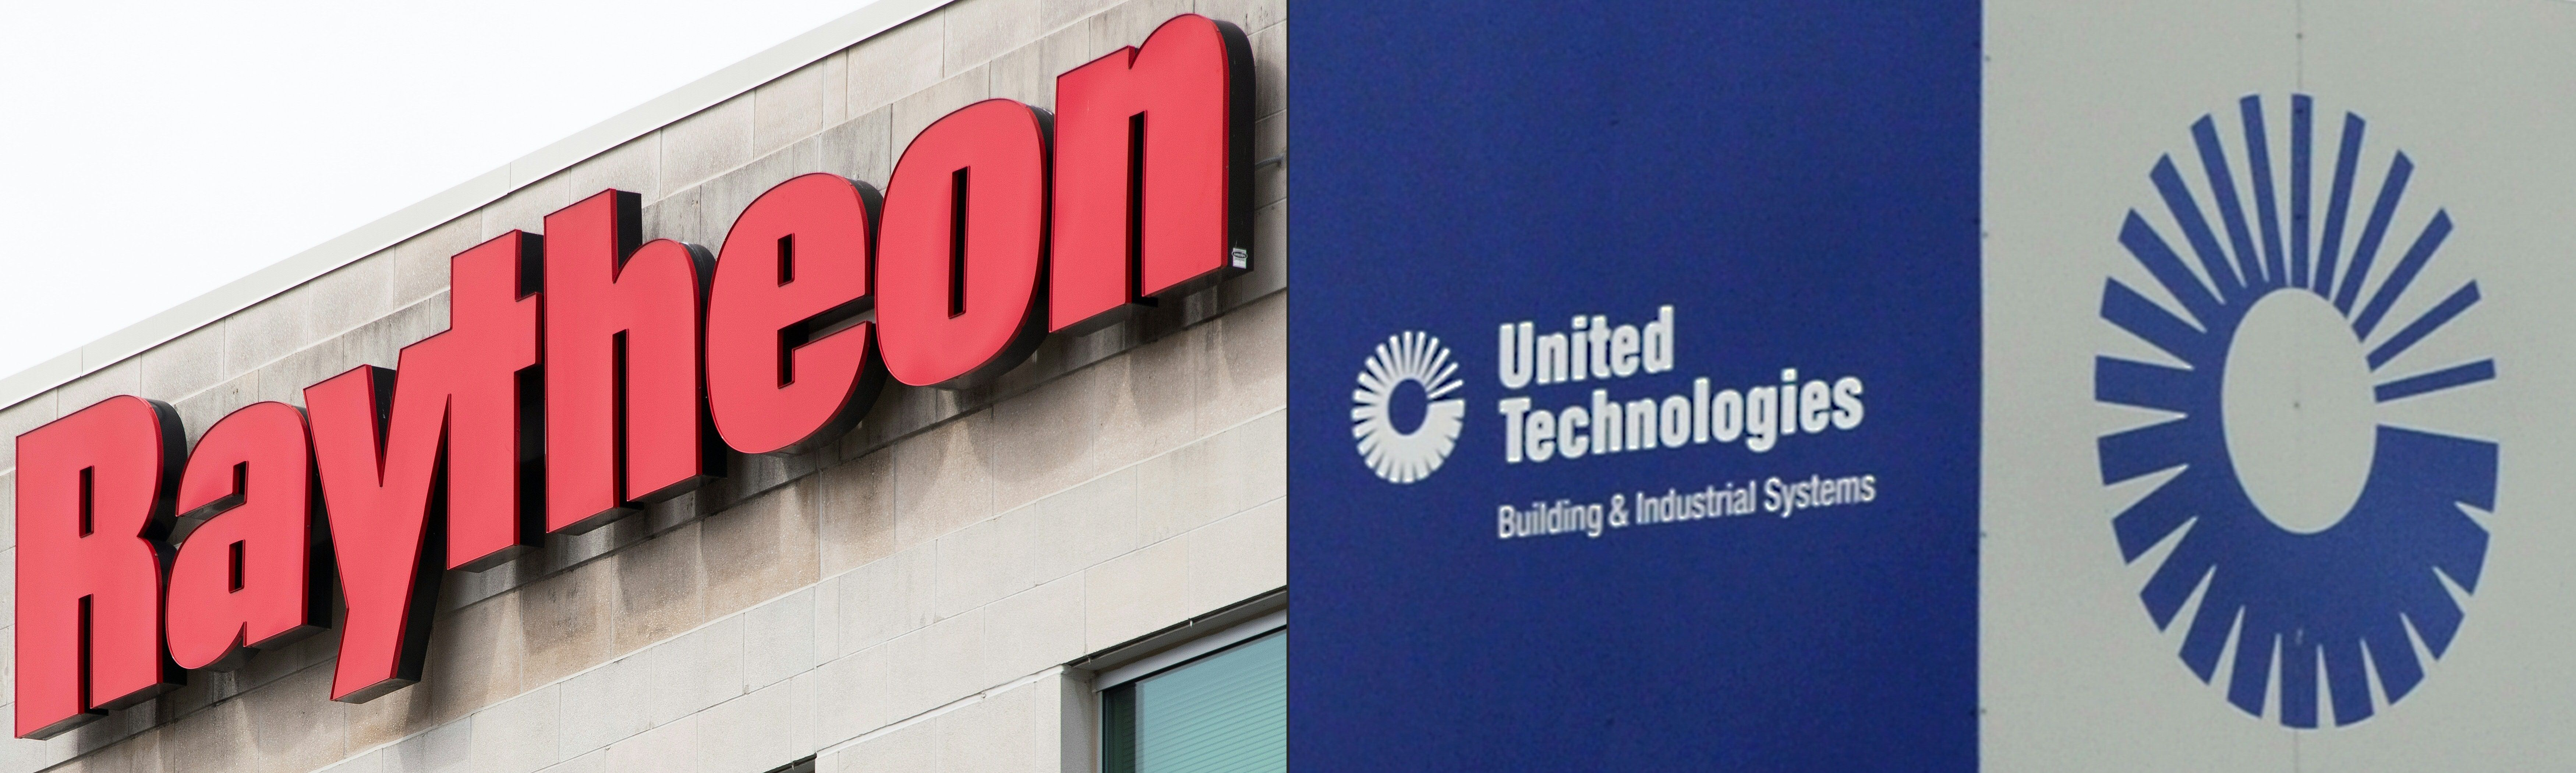 Raytheon to merge with United Technologies, creating a military